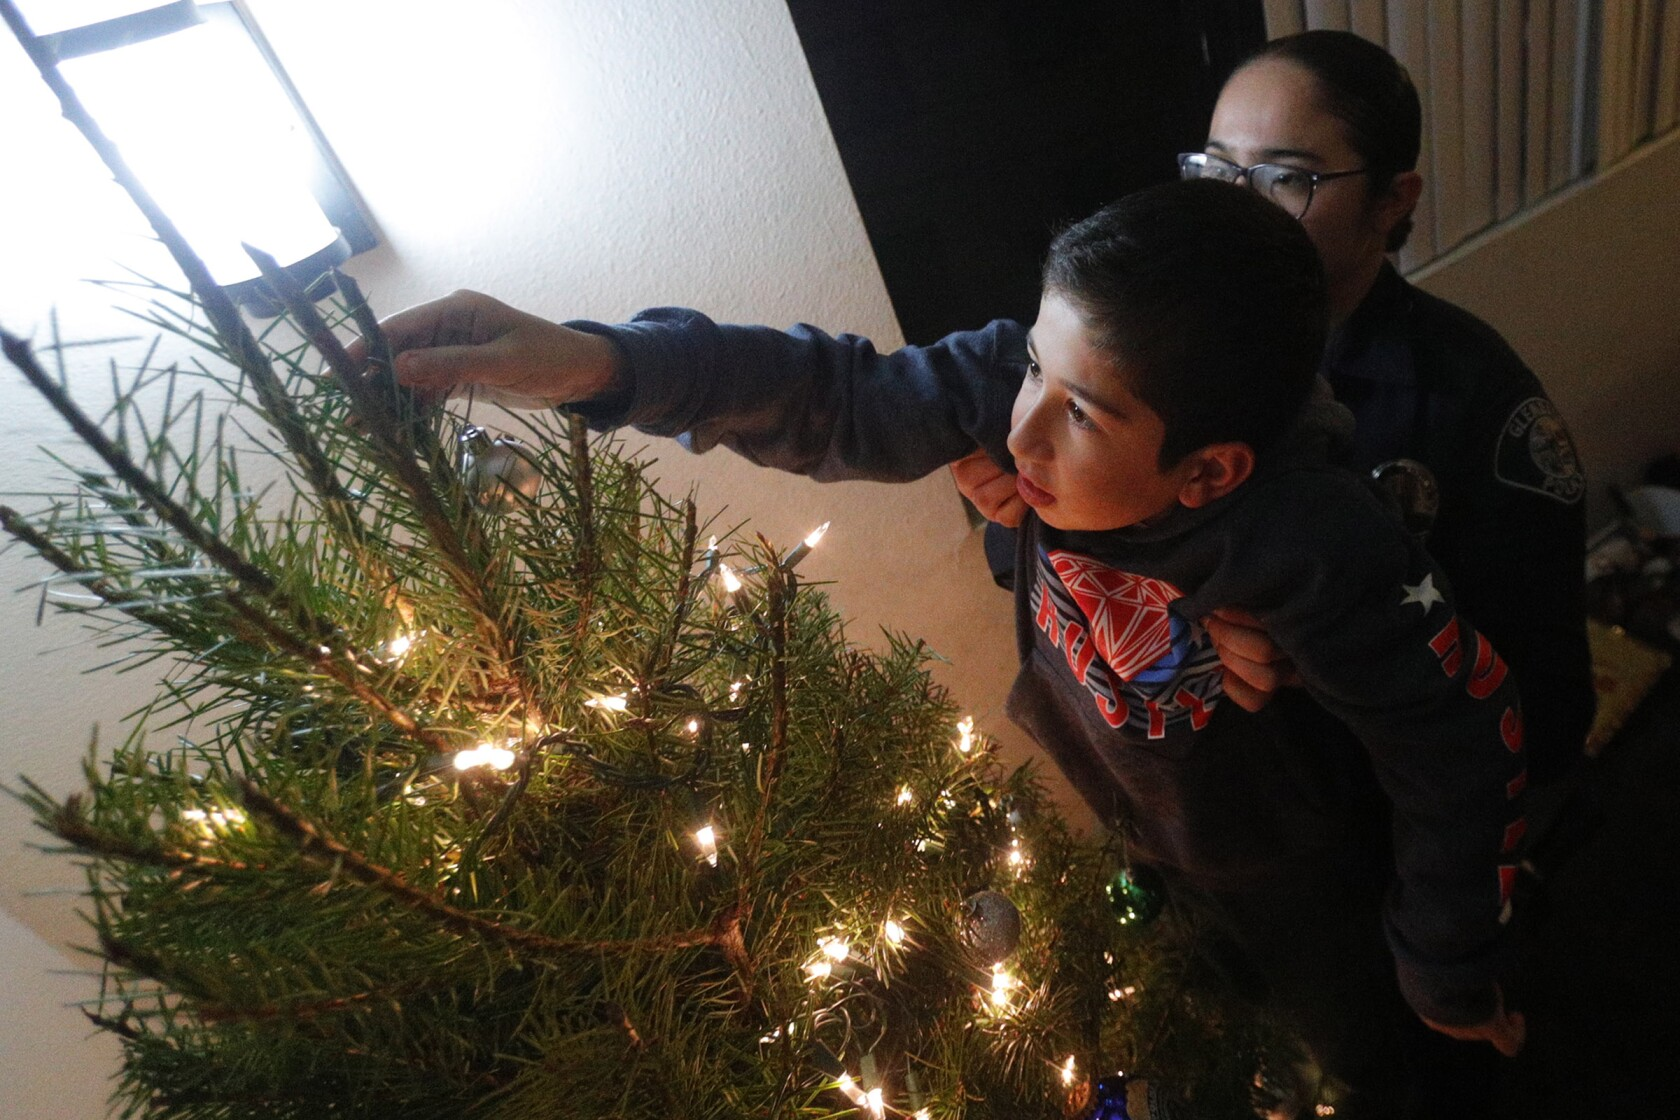 A green Christmas is in store this year for several Glendale families in need